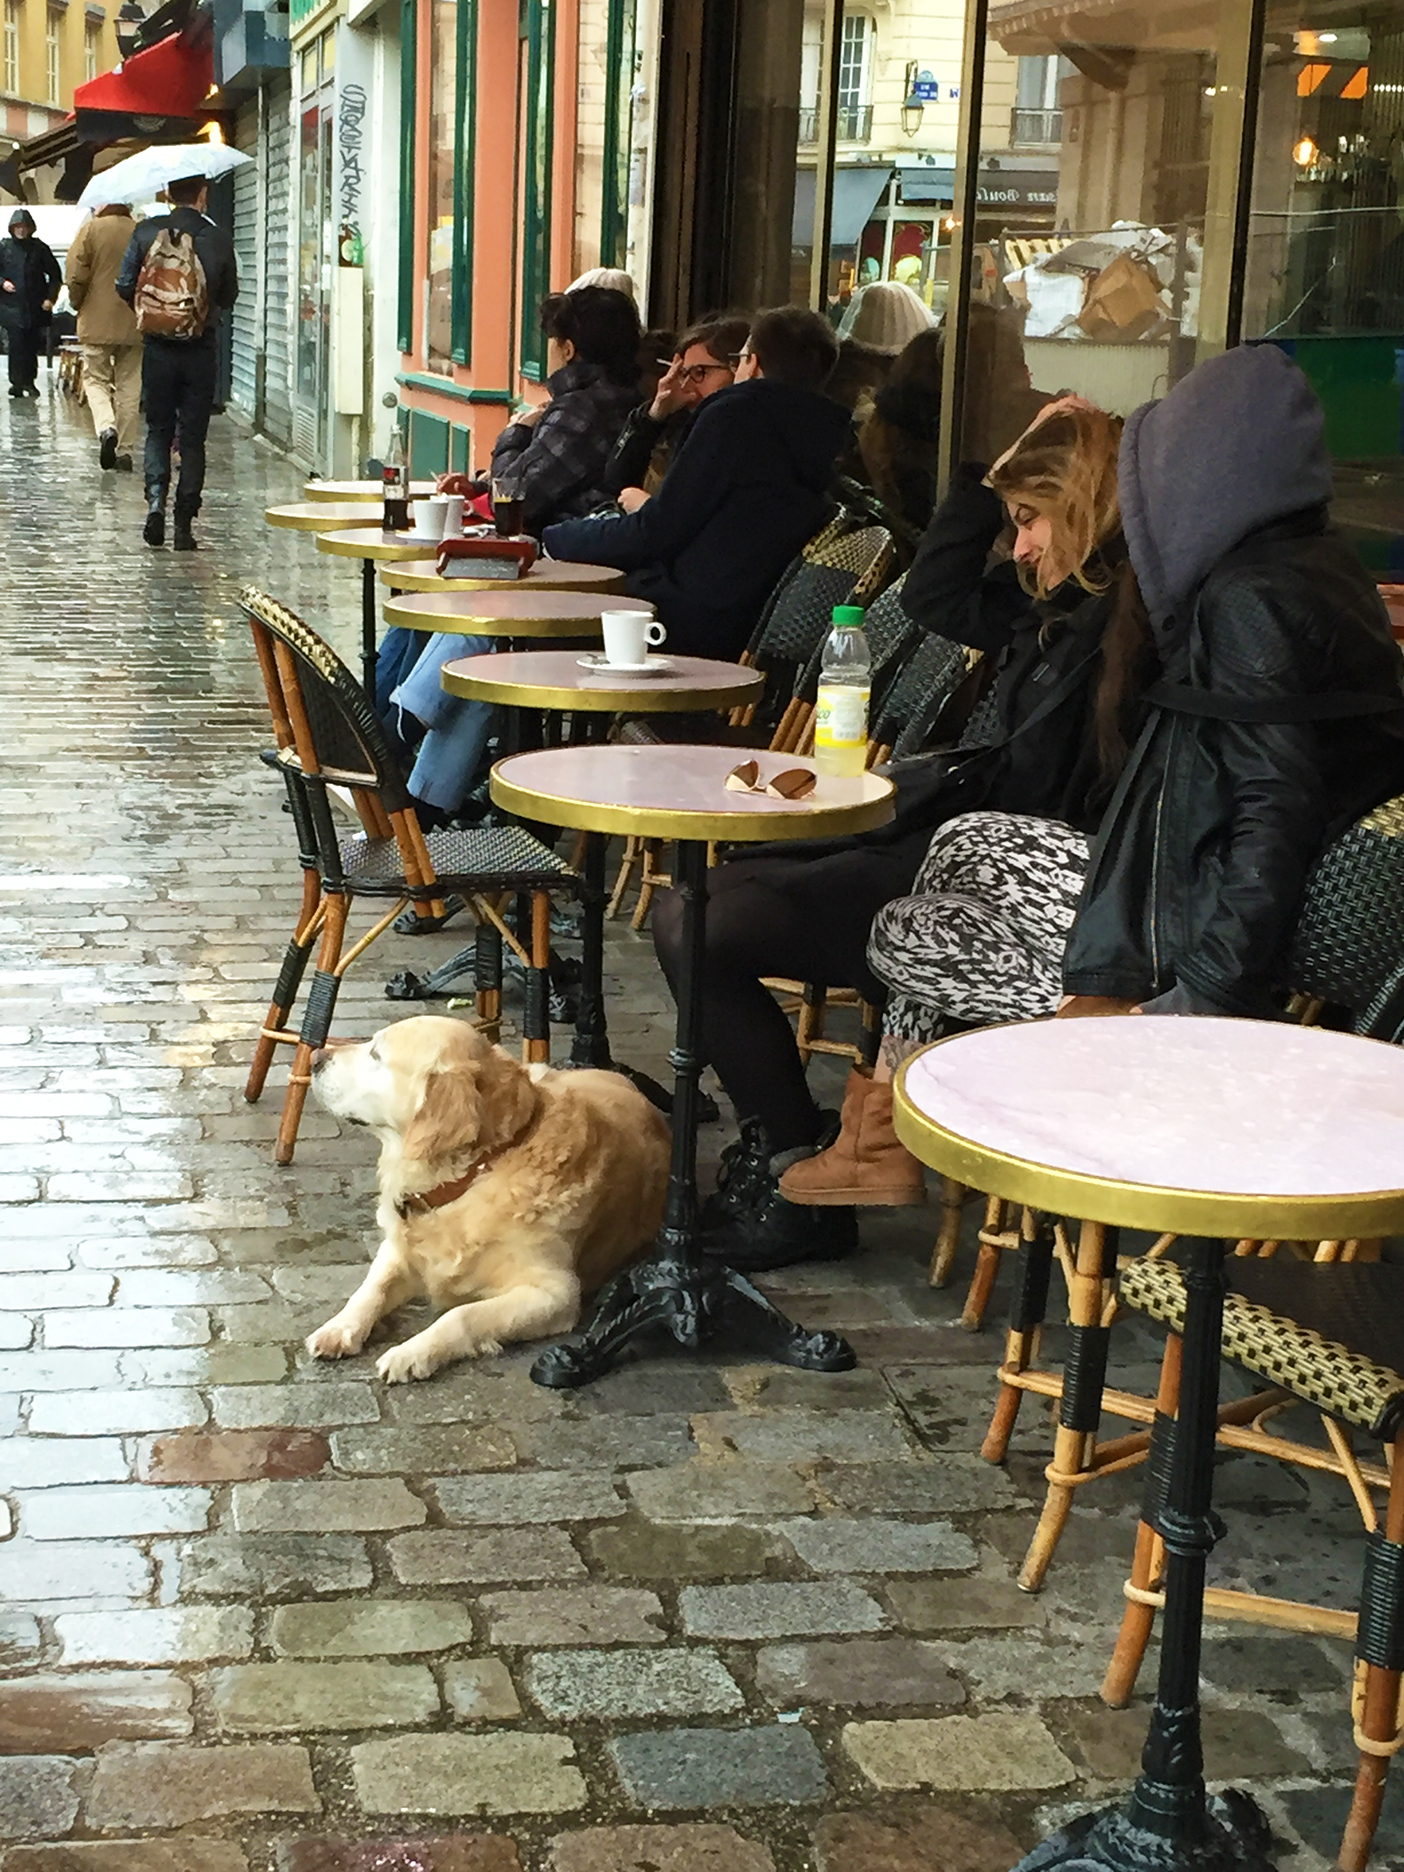 A Parisian dog practicing his people-watching skills